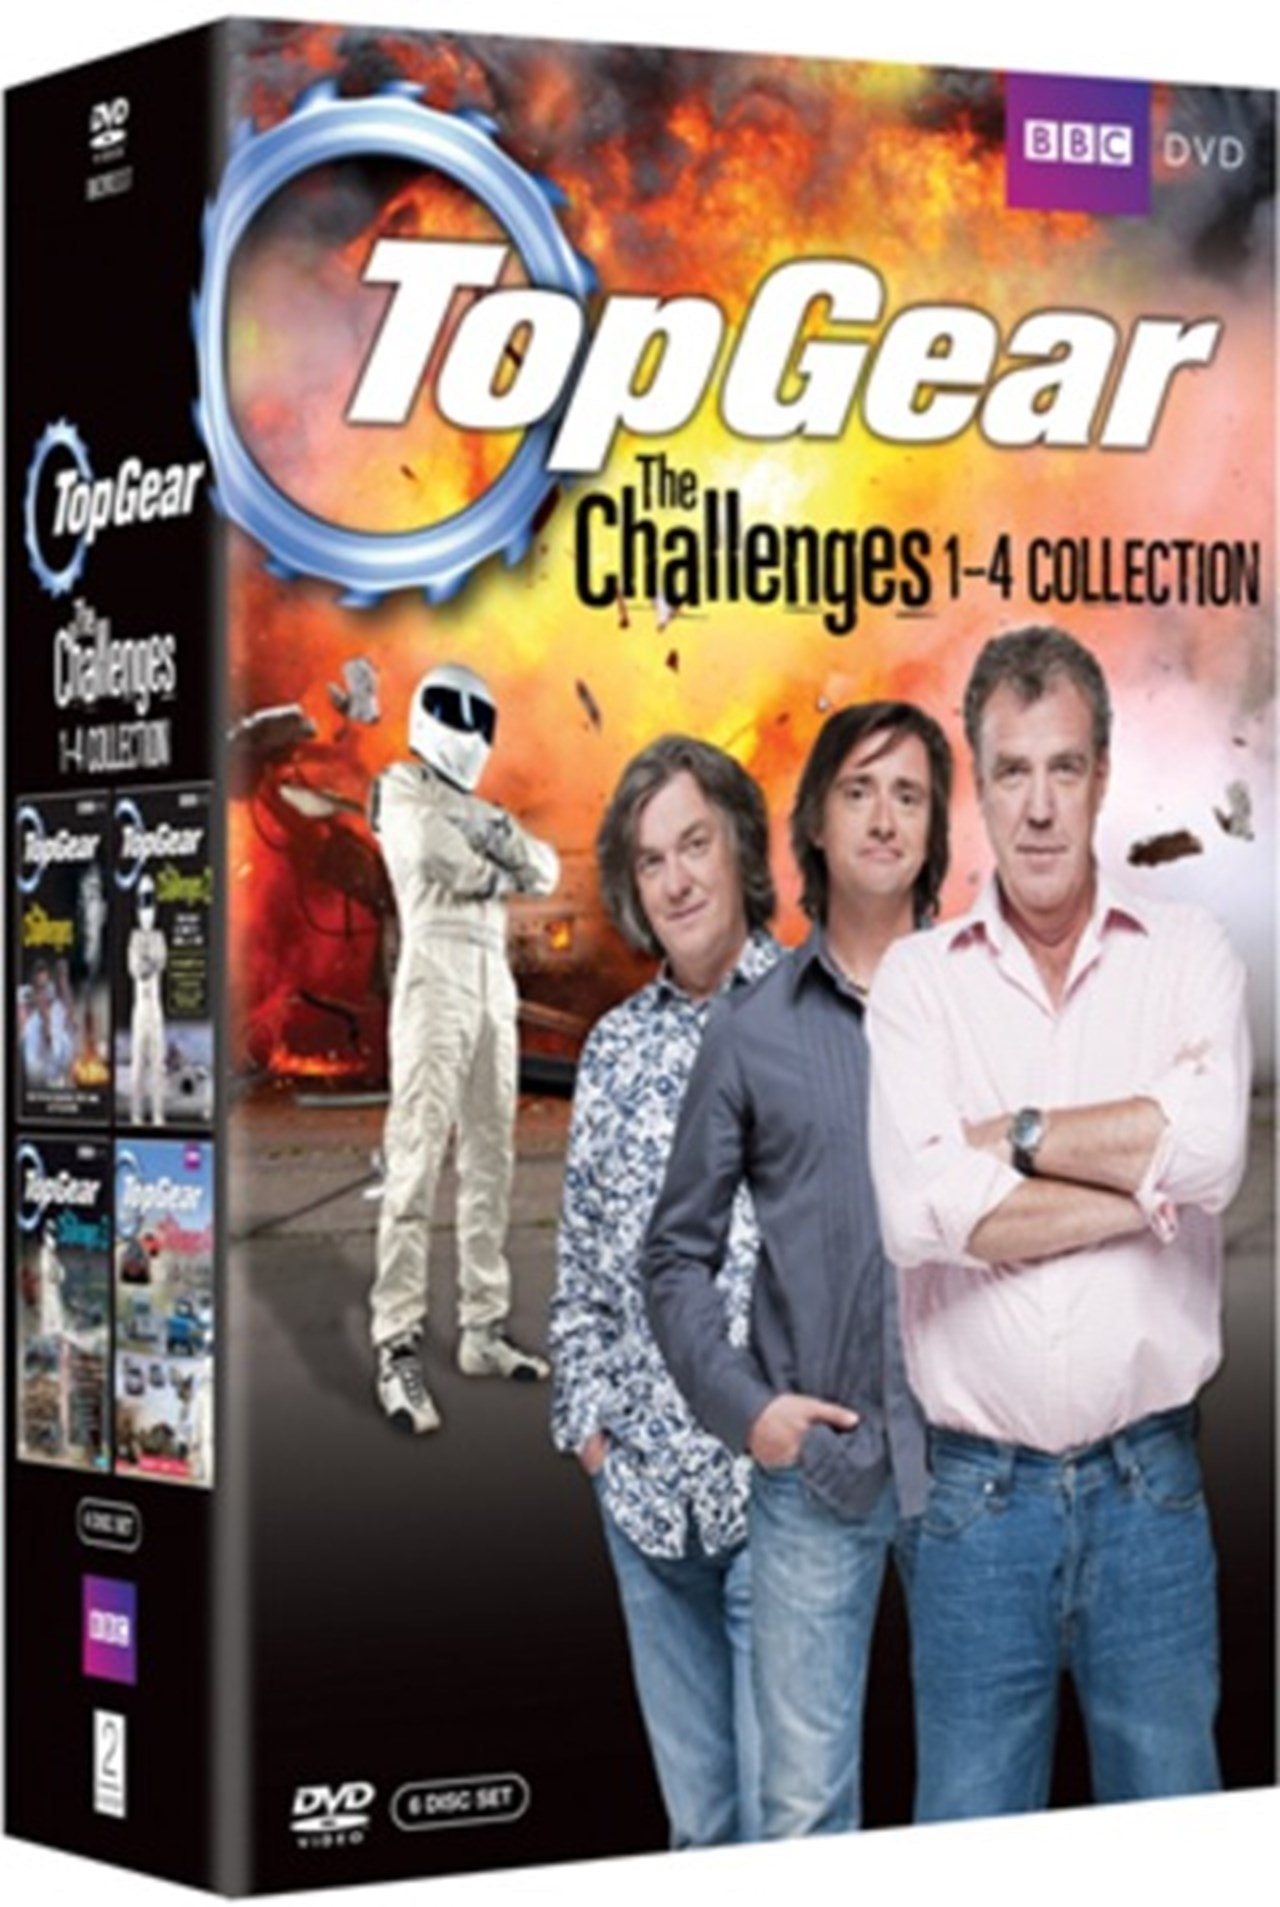 Top Gear - The Challenges: Volumes 1-4 - 1